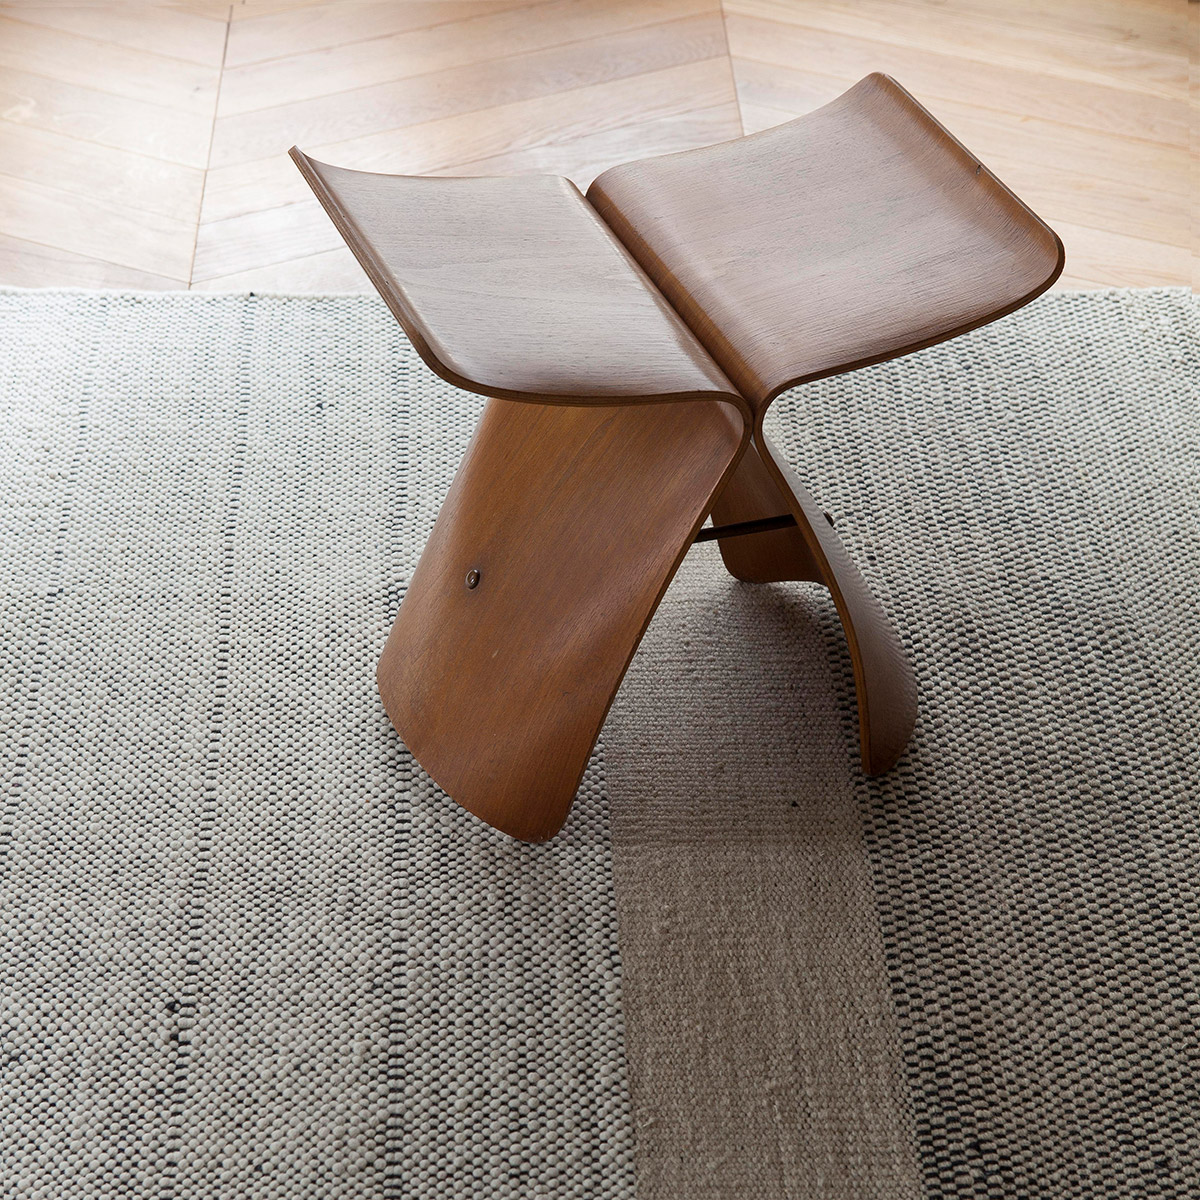 neutral textural rug with Japanese wooden stool